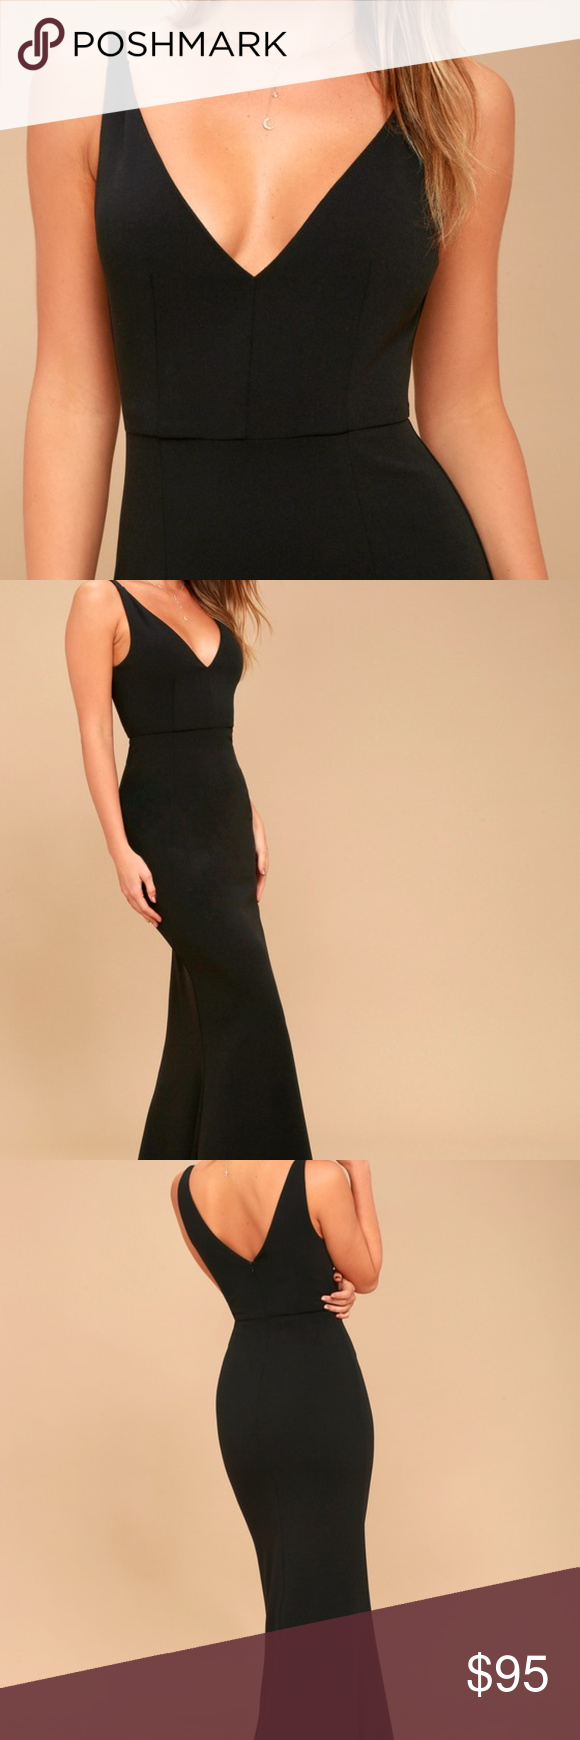 60693eed74985 Melora Black Sleeveless Maxi Dress Sexy maxi dress from Lulu s. Currently  out of stock on